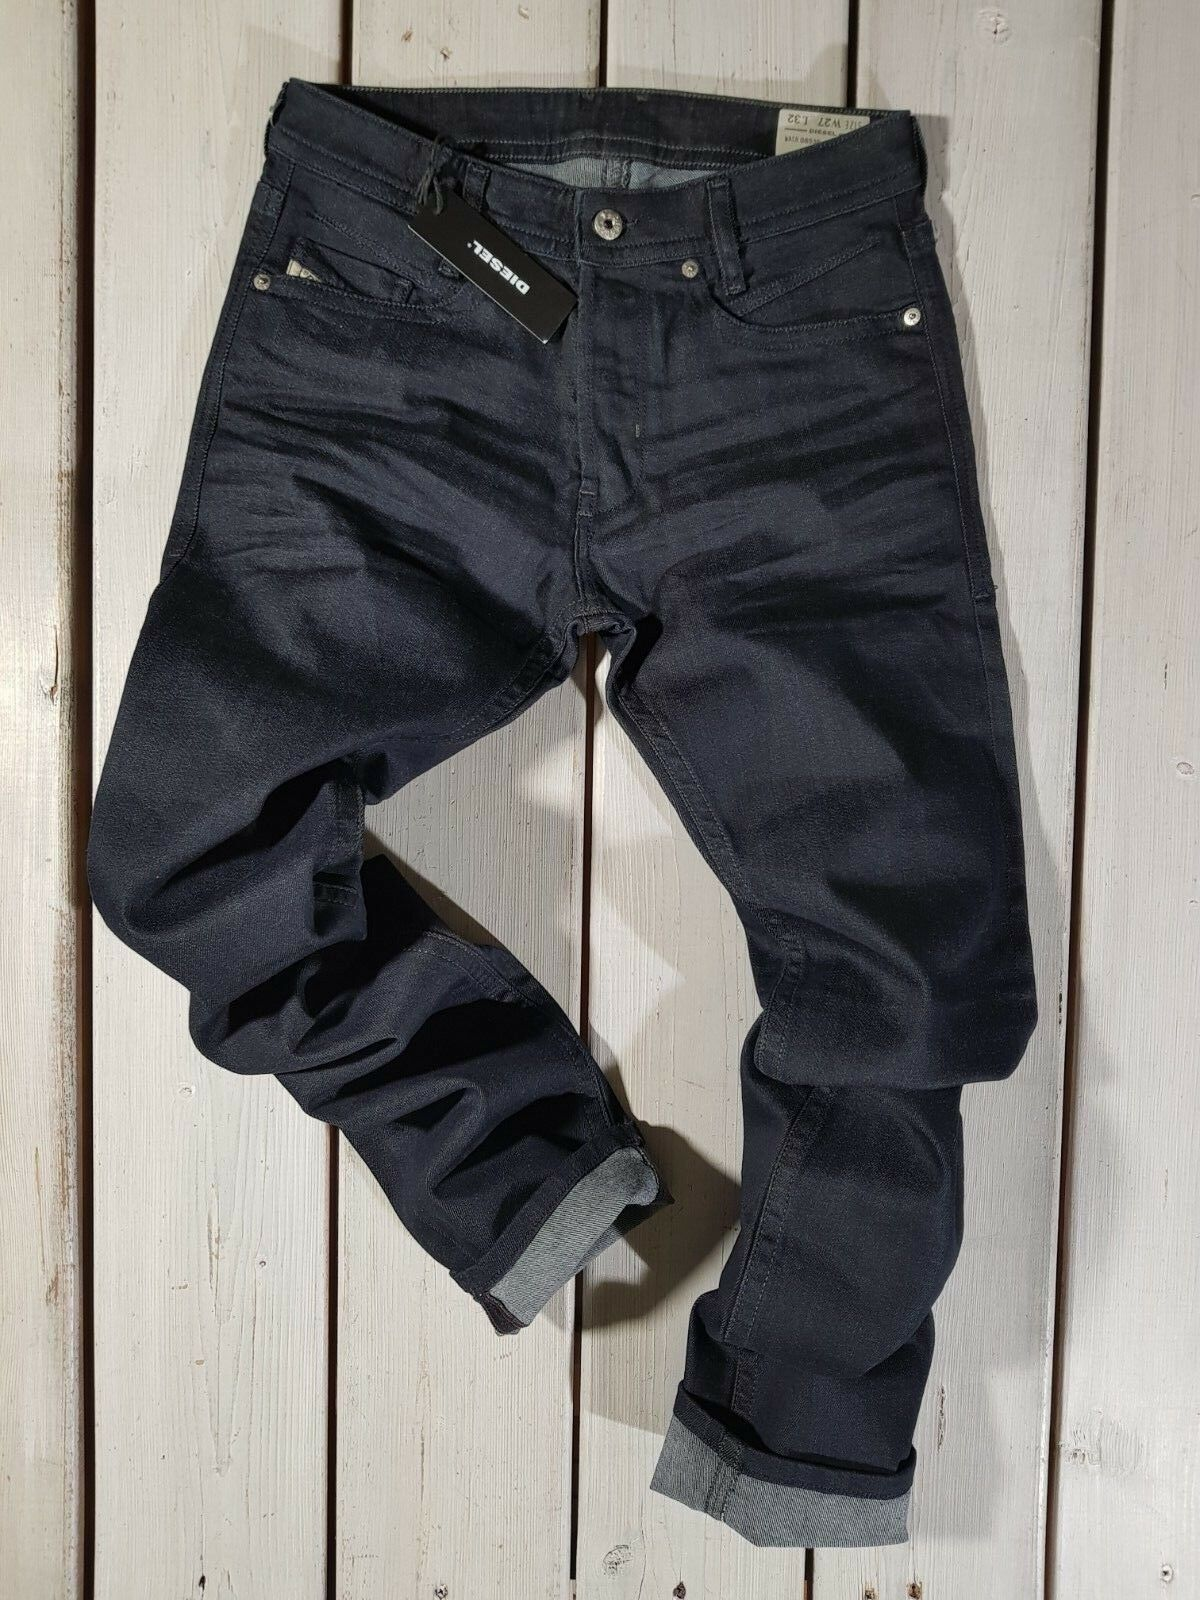 RRP NEW DIESEL MEN'S JEANS AKEE 0853N REGULAR SLIM TAPERED STRETCH blueE